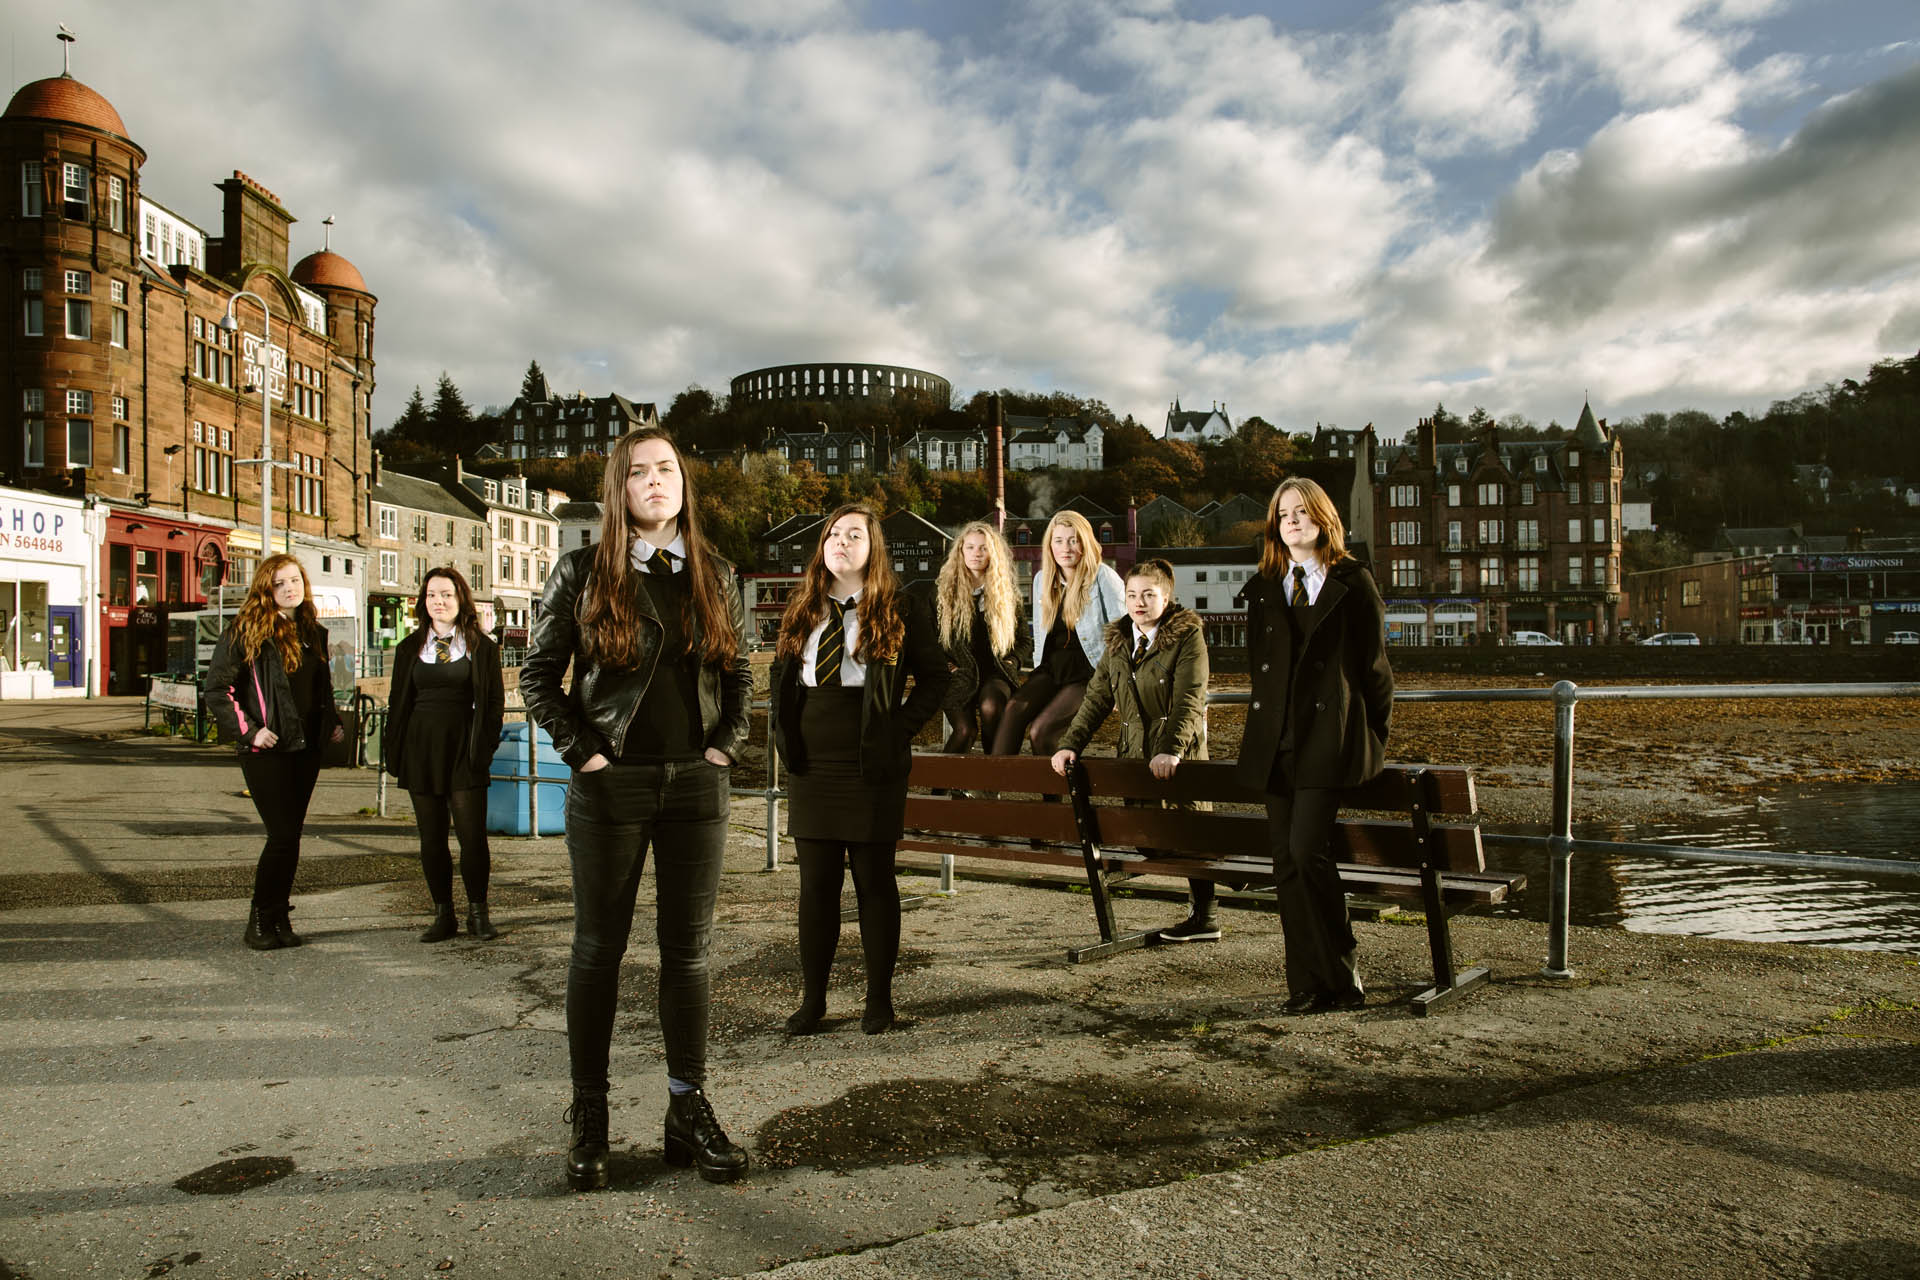 Portrait of school girls at Oben, part of a series of portraits of different communities commissioned by the National Theatre of Scotland.